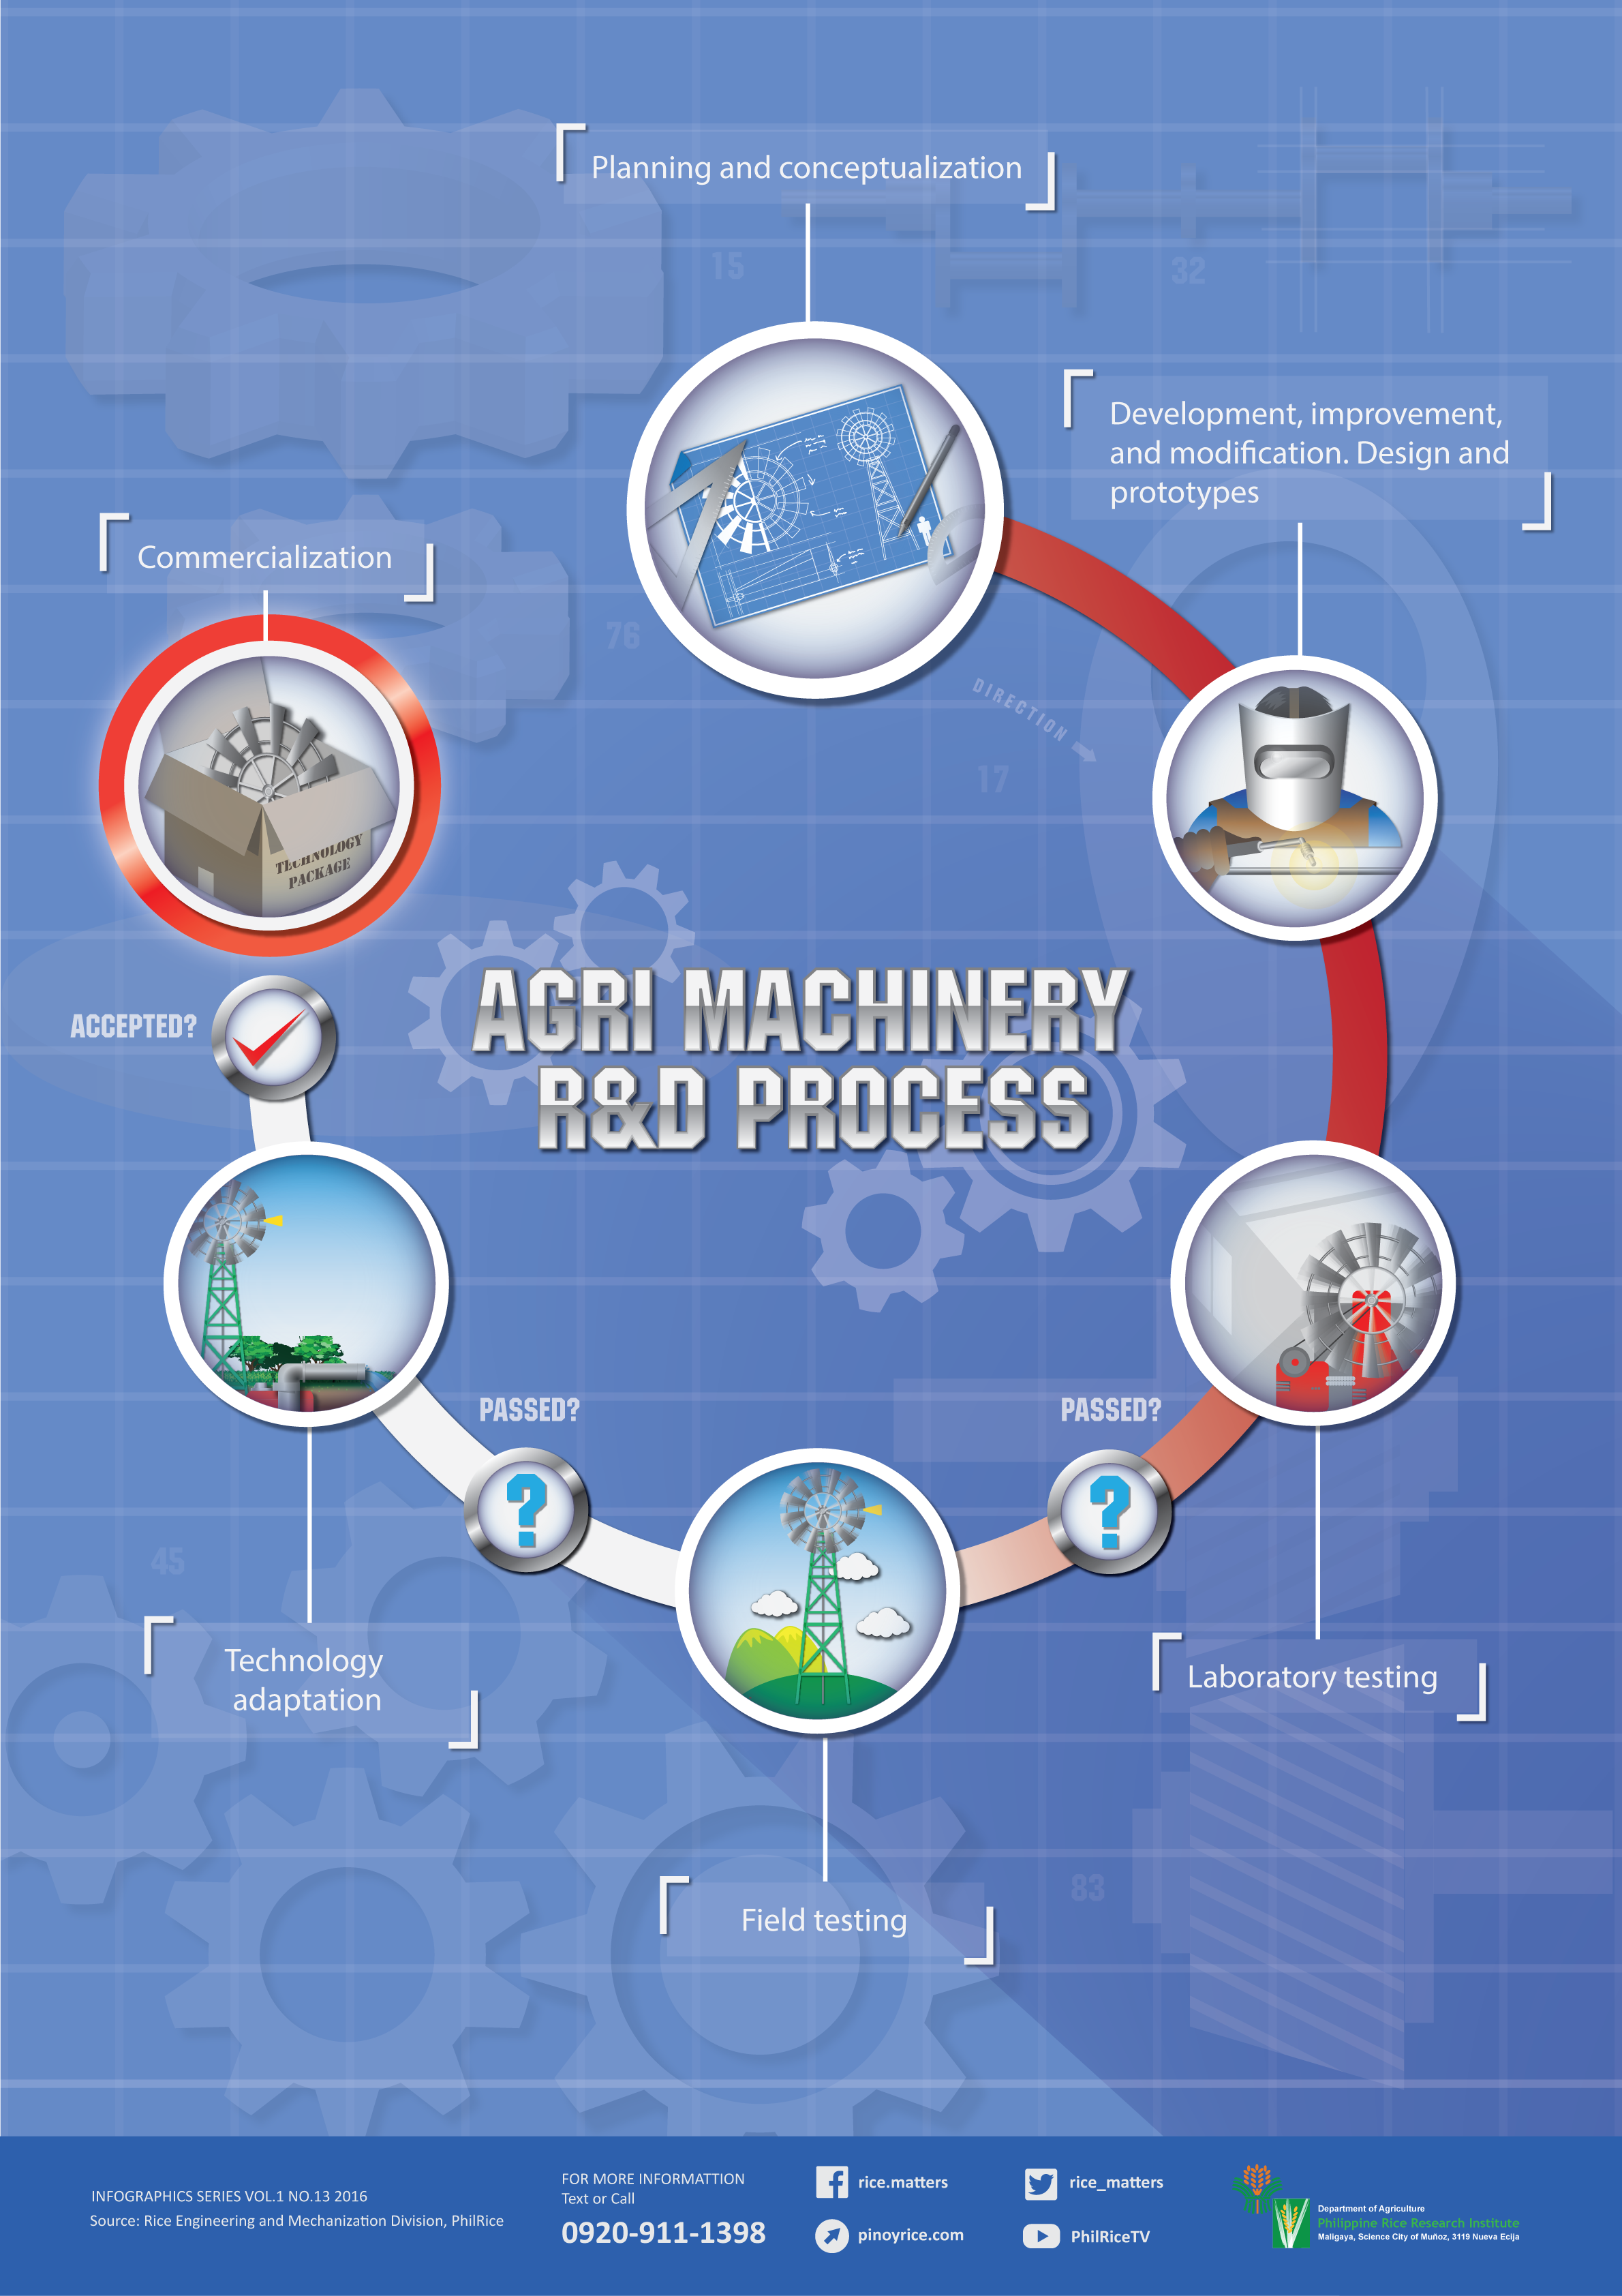 AgriMachinery-R&D